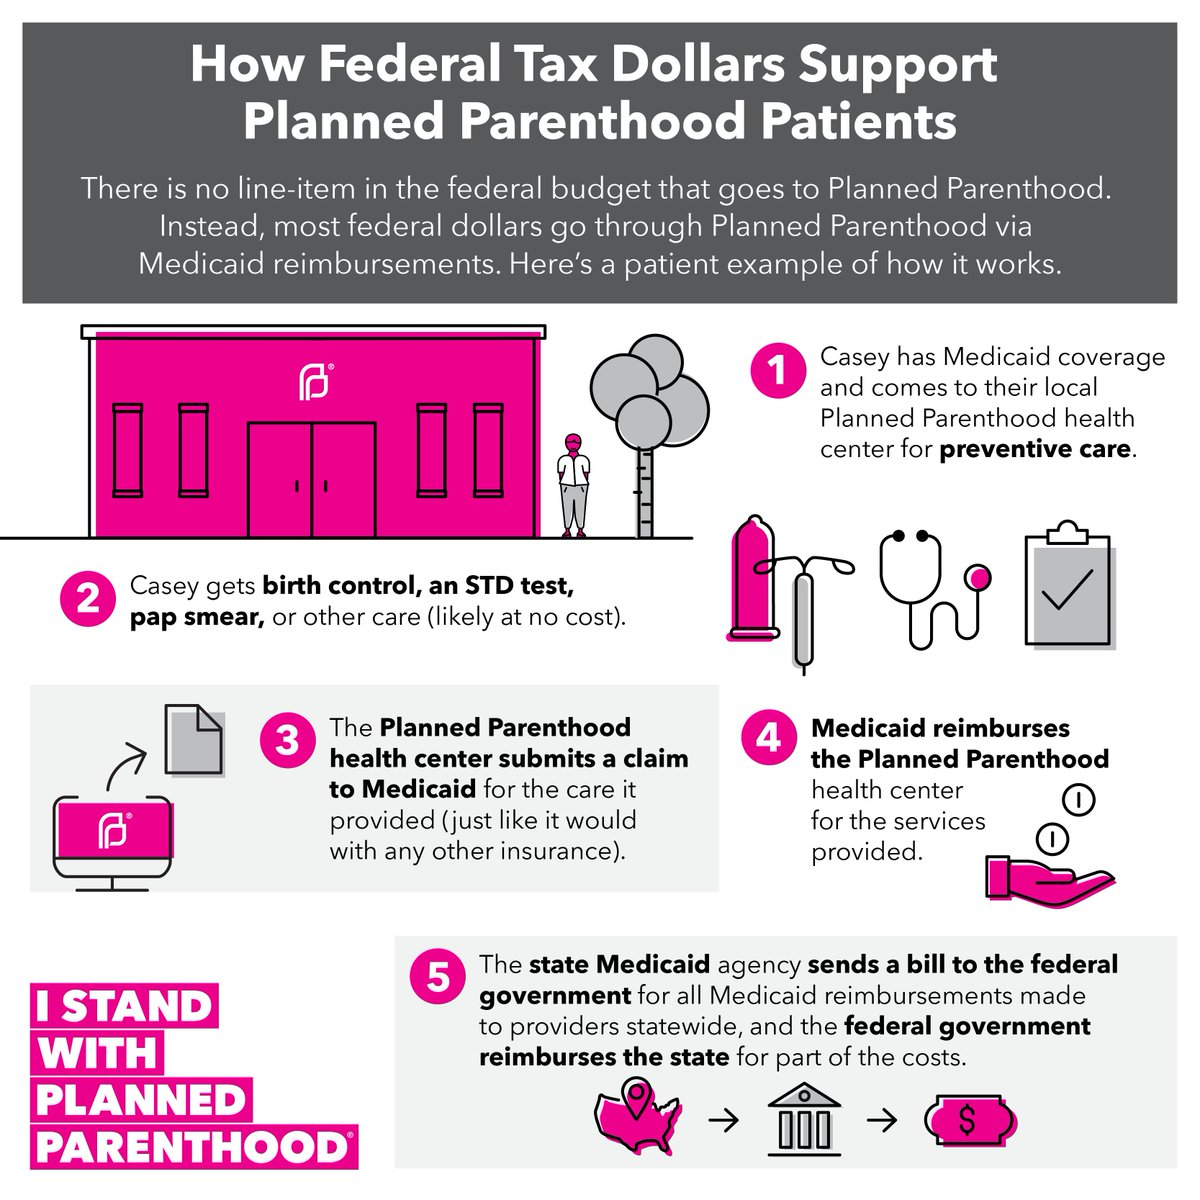 'Defunding' Planned Parenthood is a misnomer. Here's who gets hurt when politicians attack access to care: https://t.co/v2VwIZaLZP